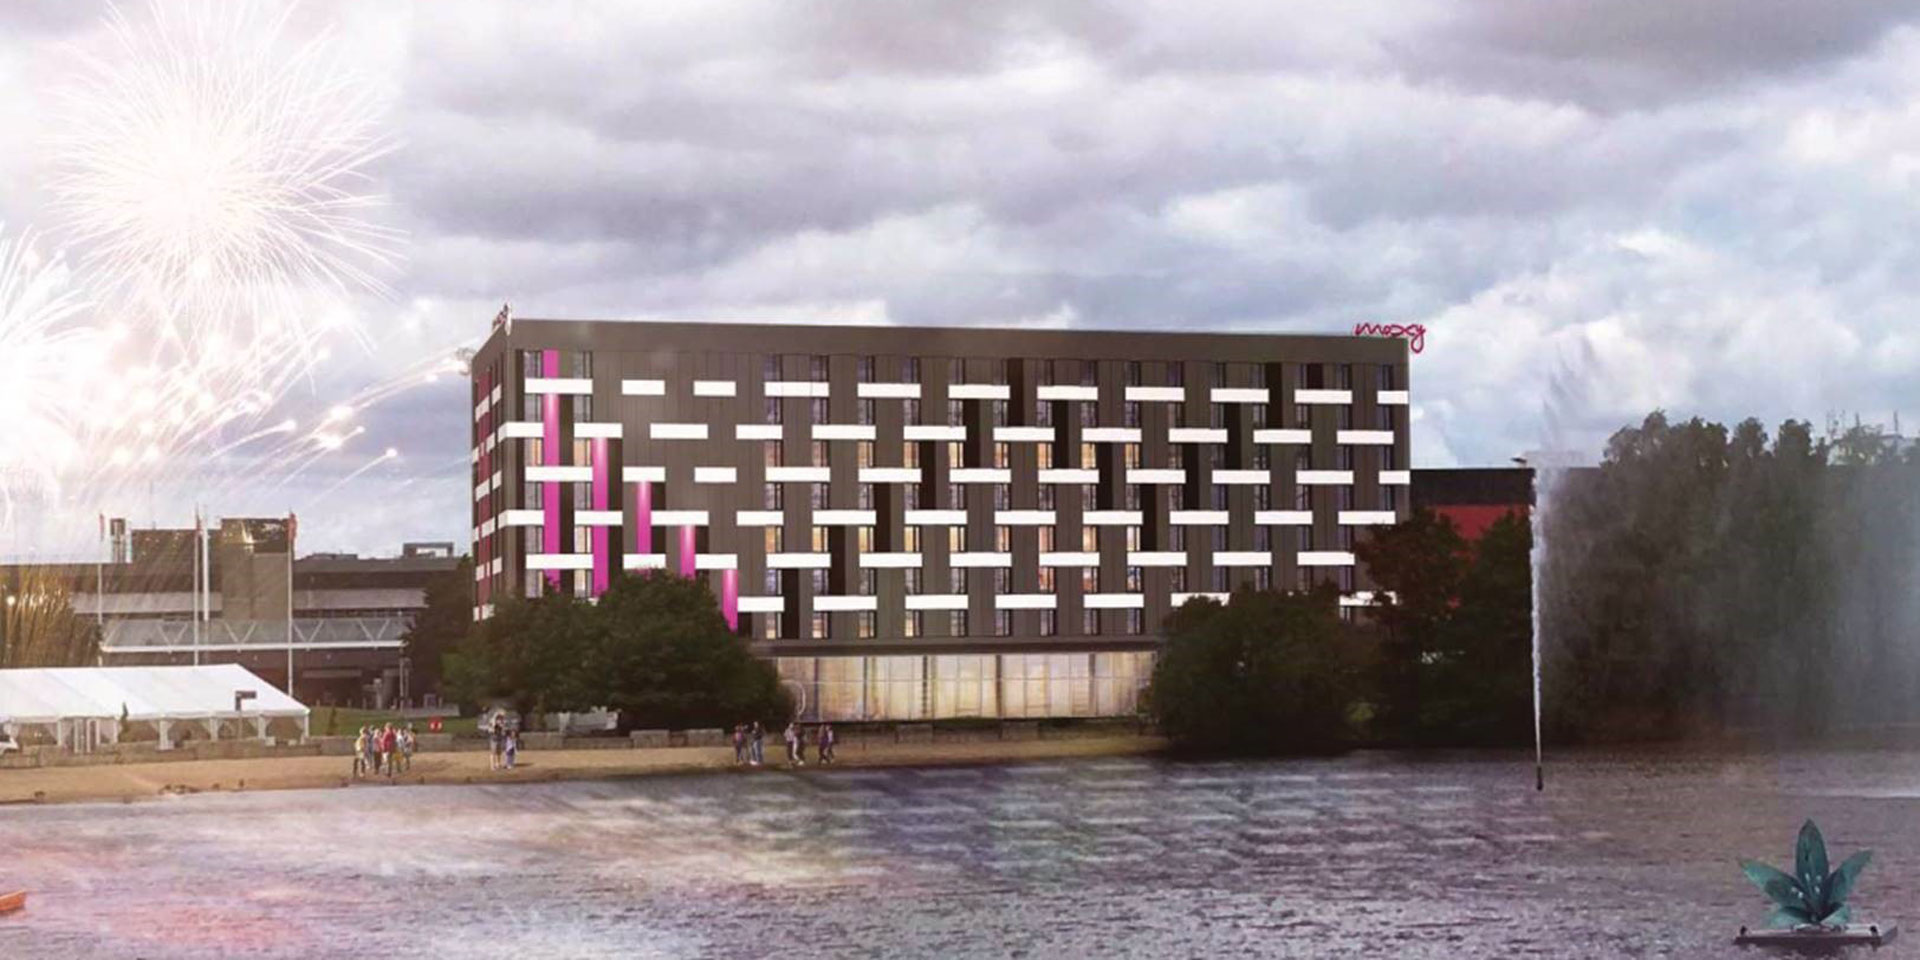 New Moxy hotel to open in NEC Solihull